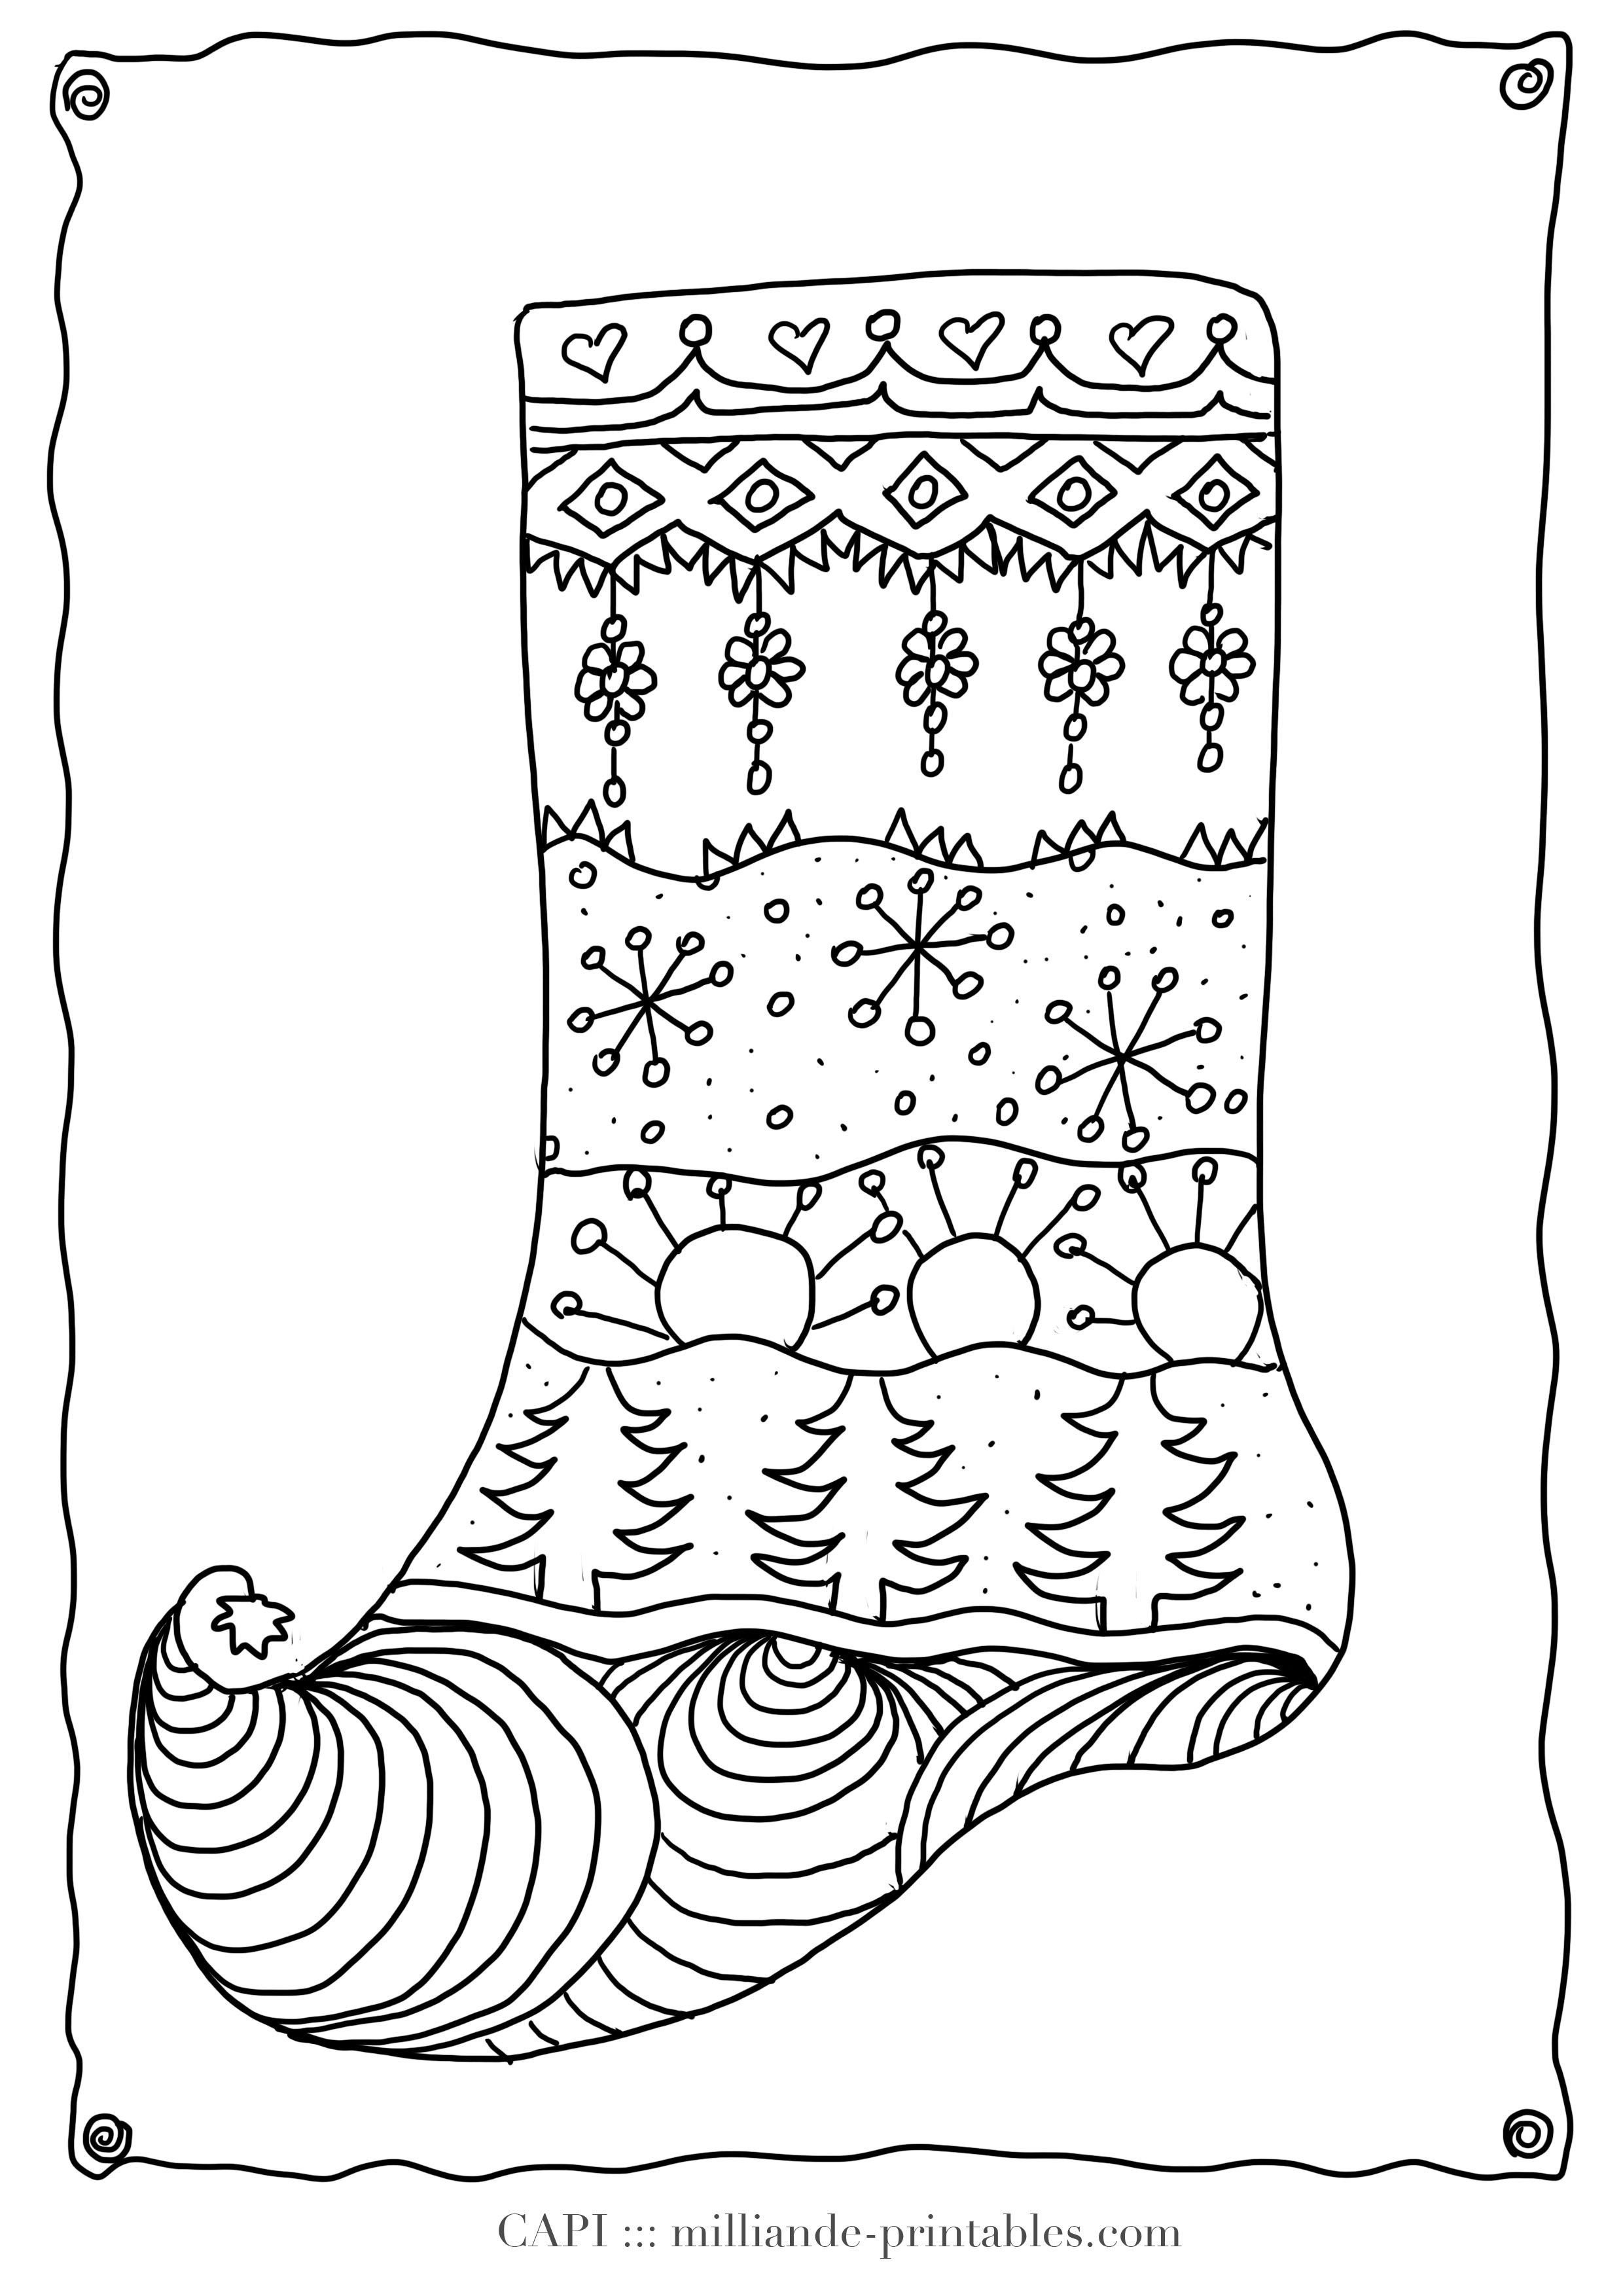 Christmas Coloring Page Stocking Milliande S Free Christmas Colo Free Christmas Coloring Sheets Christmas Coloring Sheets Printable Christmas Stocking Pattern